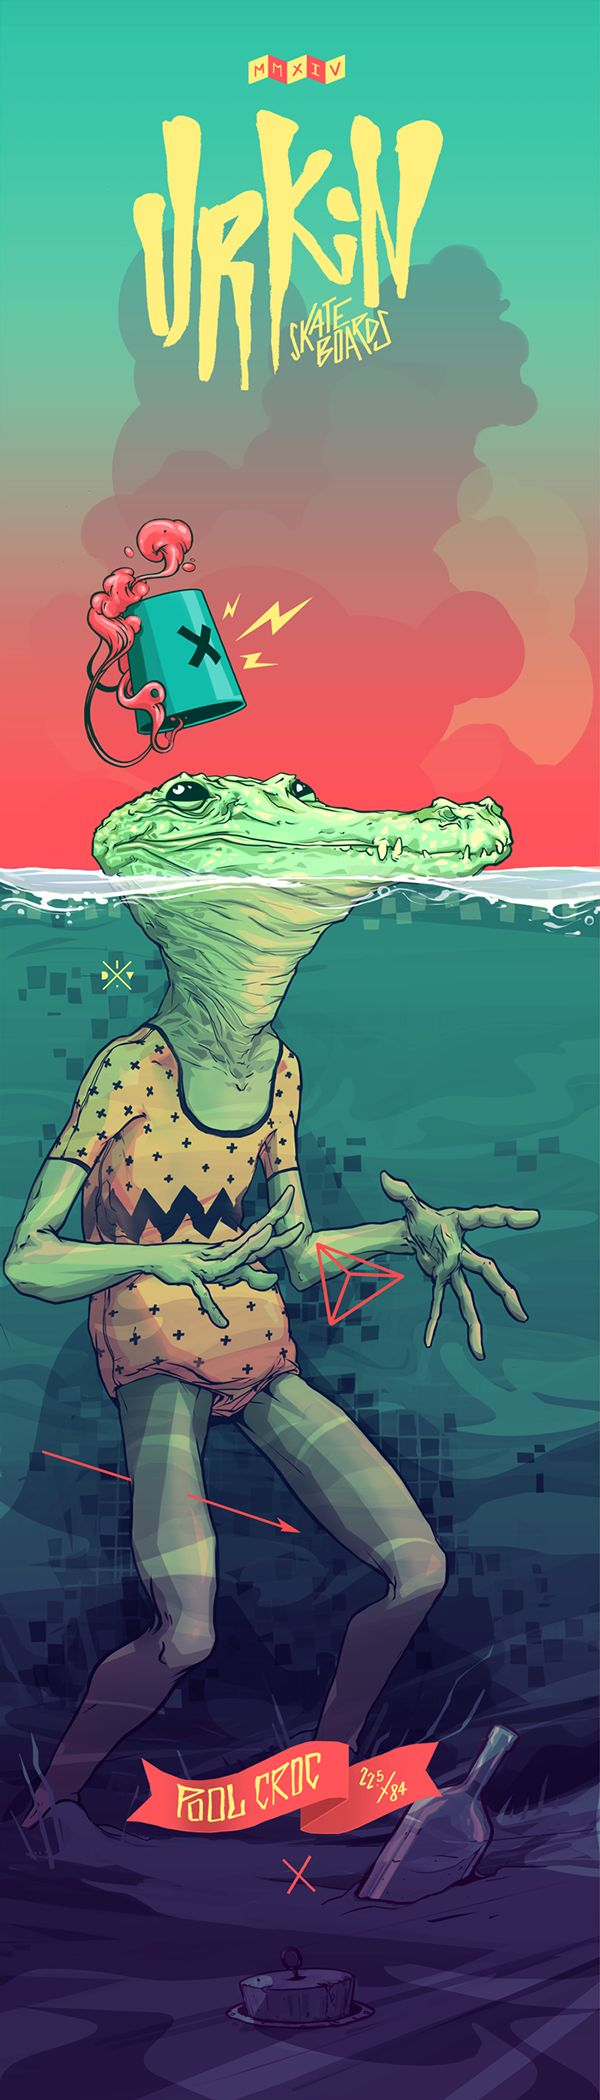 Urkin / Pool Croc on Behance